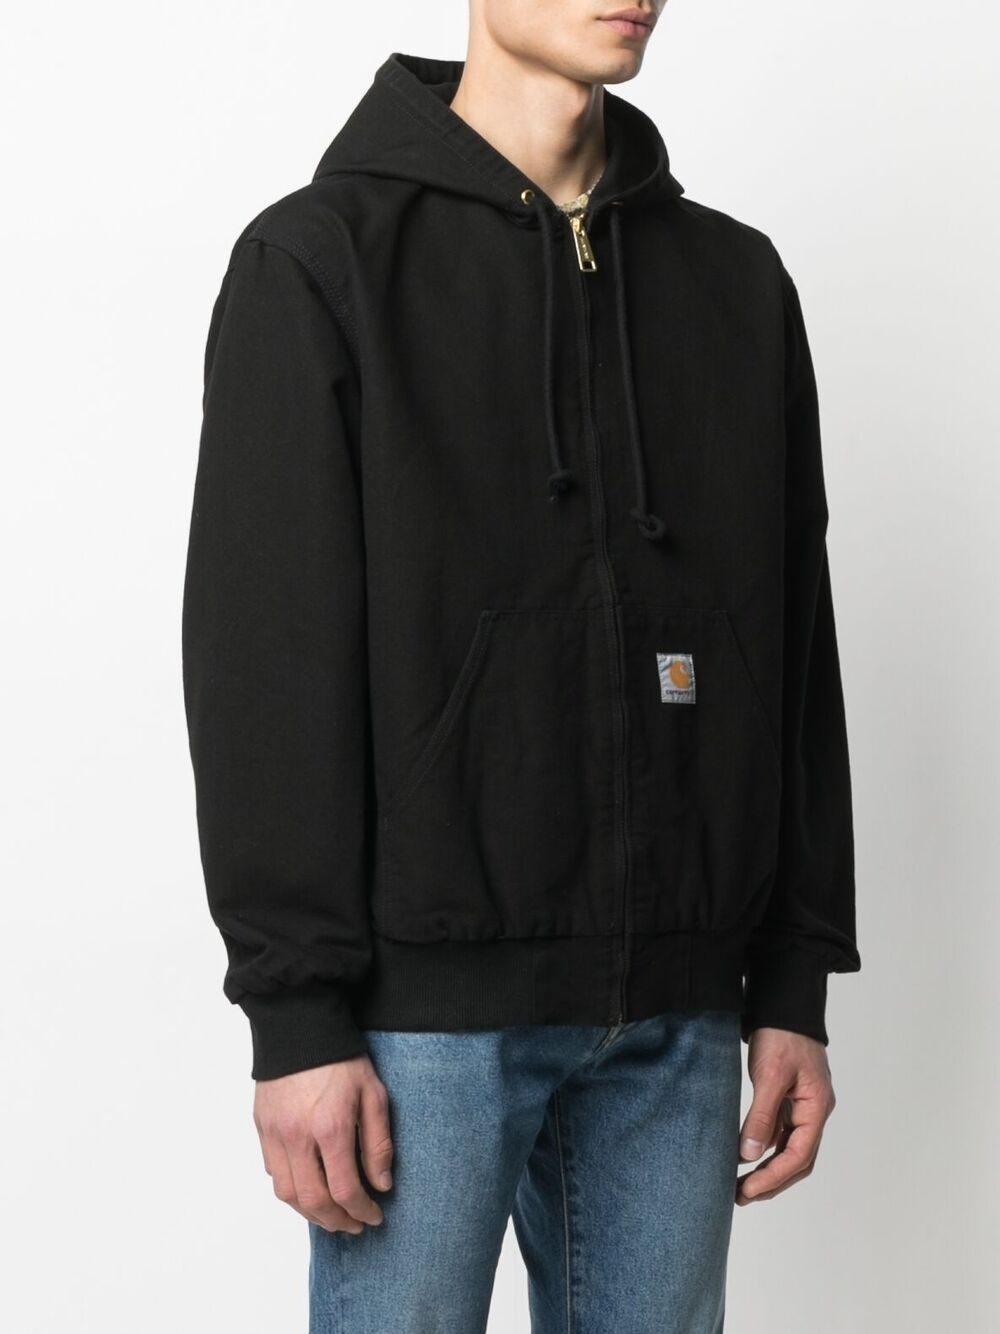 giacca active uomo nera in cotone CARHARTT WIP | Giacche | I02924289.02